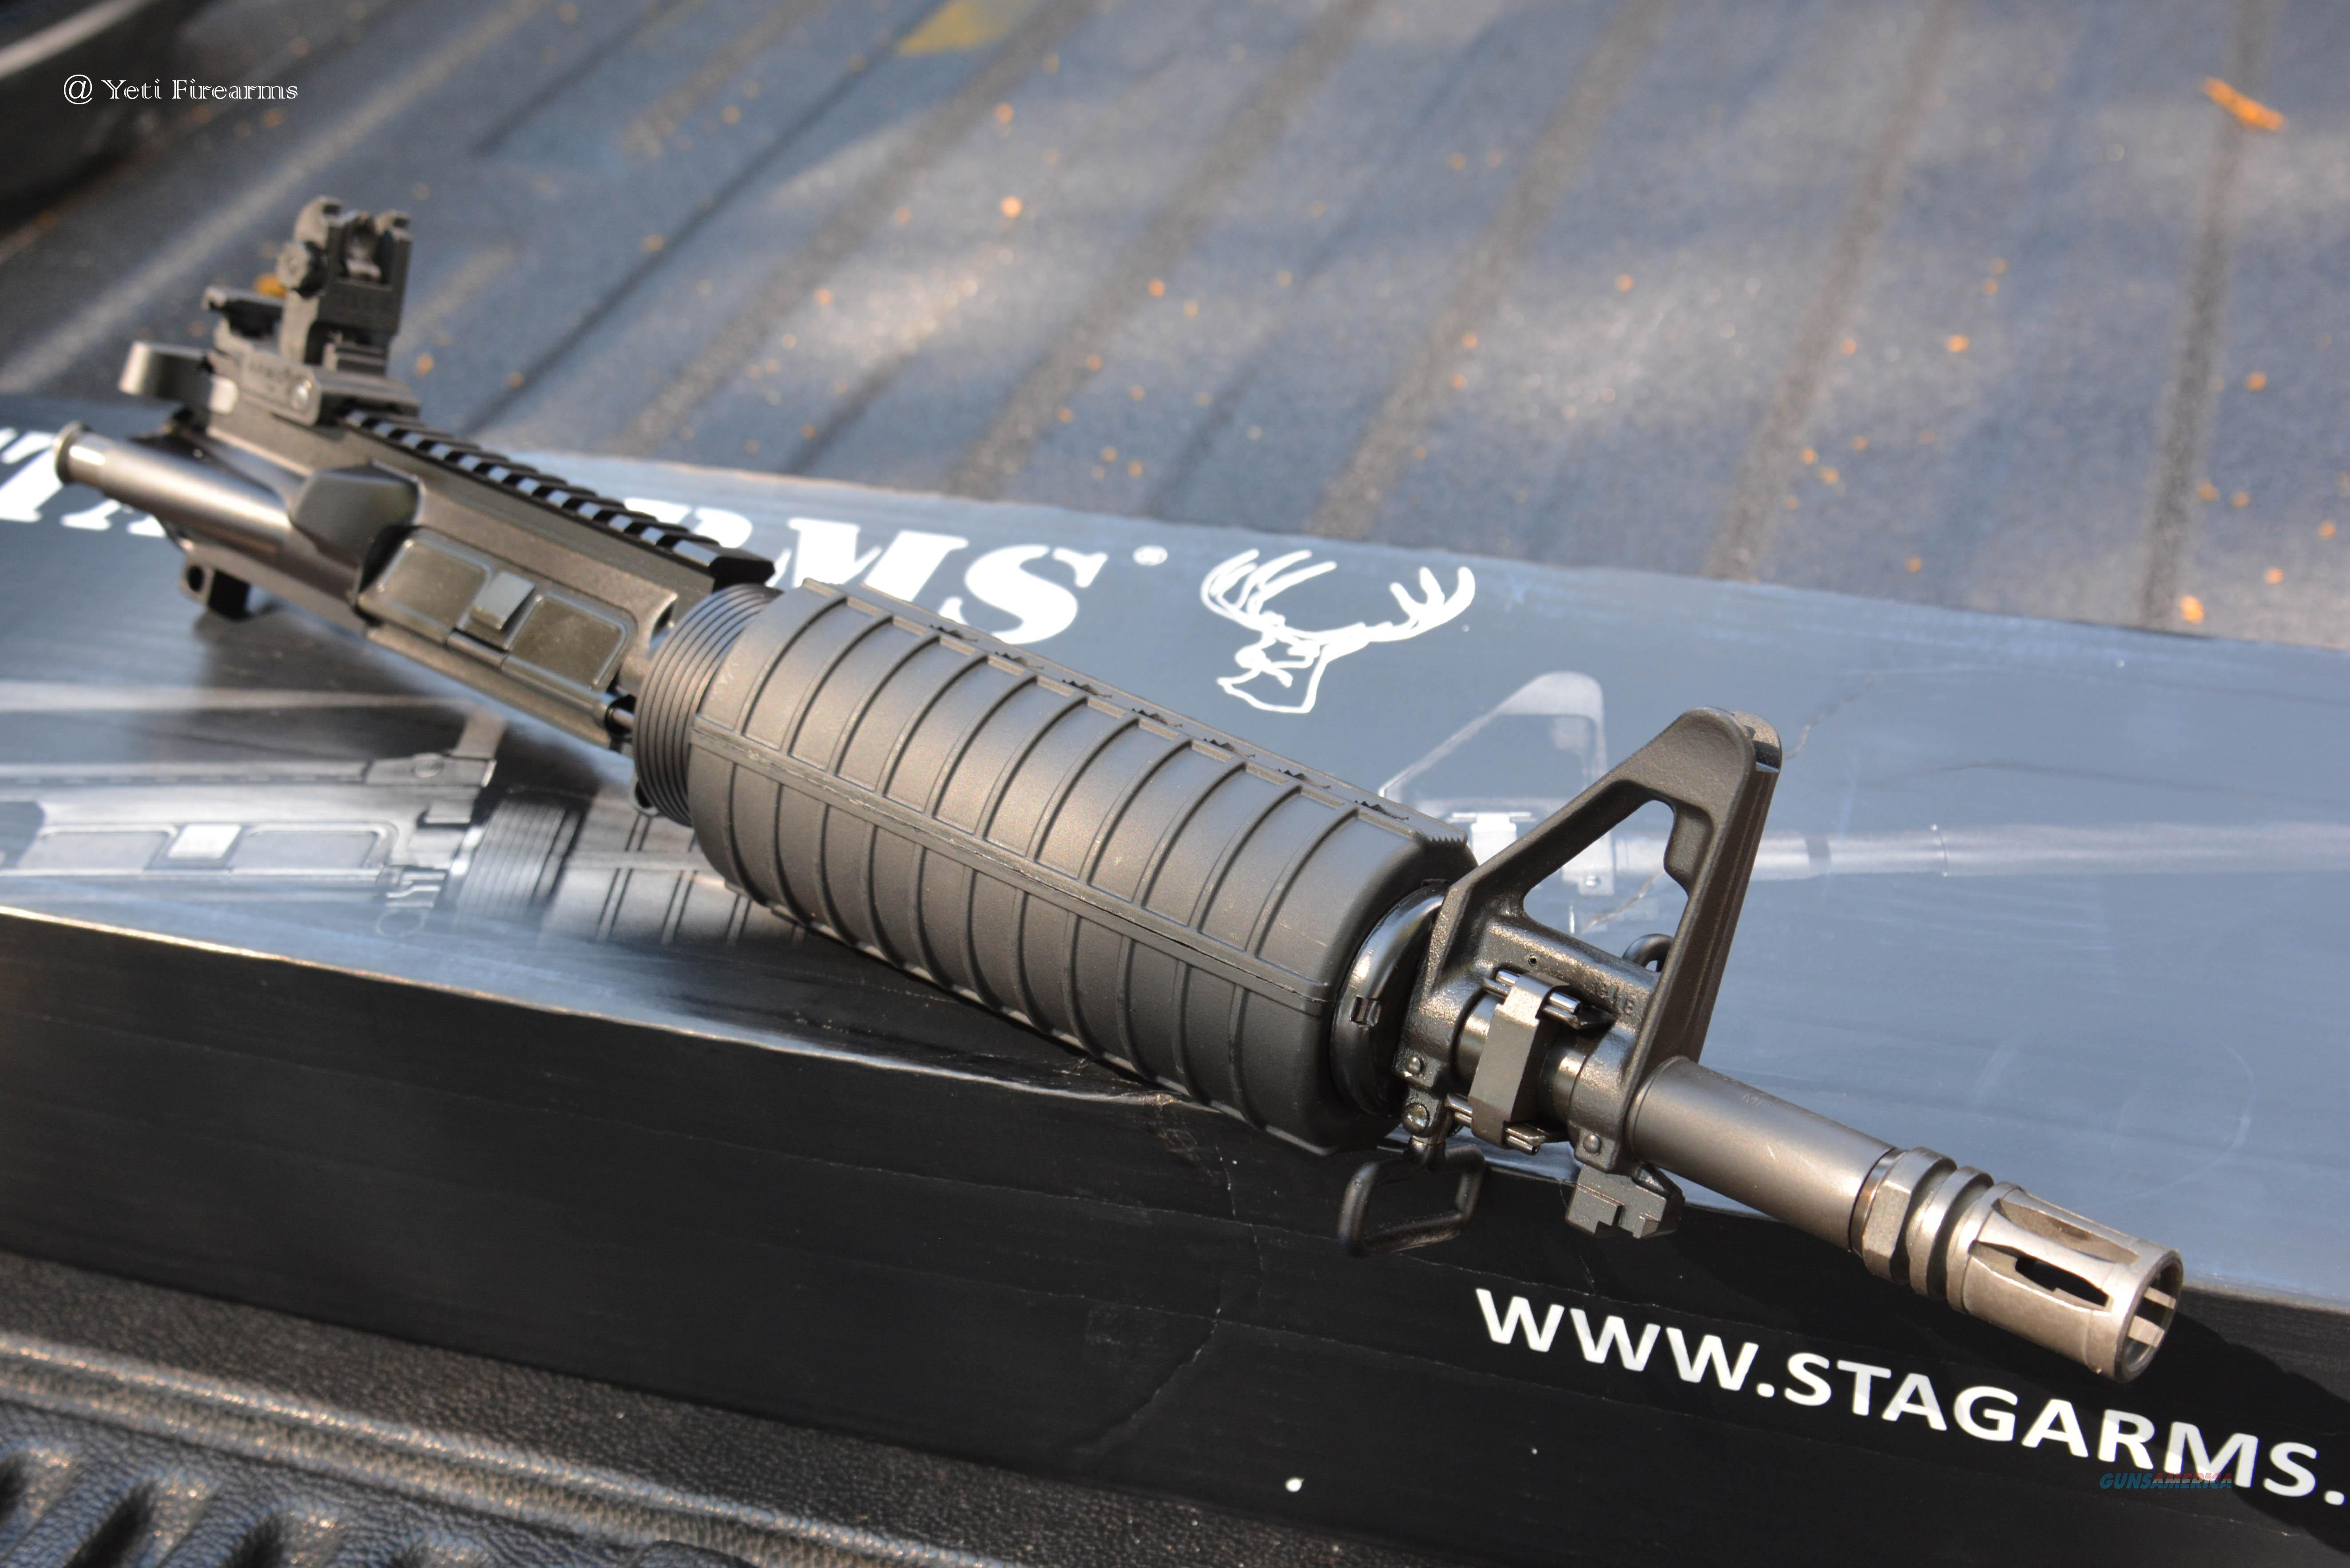 "Stag Arms Complete AR-15 SBR Upper 5.56mm 11.5""  Non-Guns > Gun Parts > M16-AR15 > Upper Only"